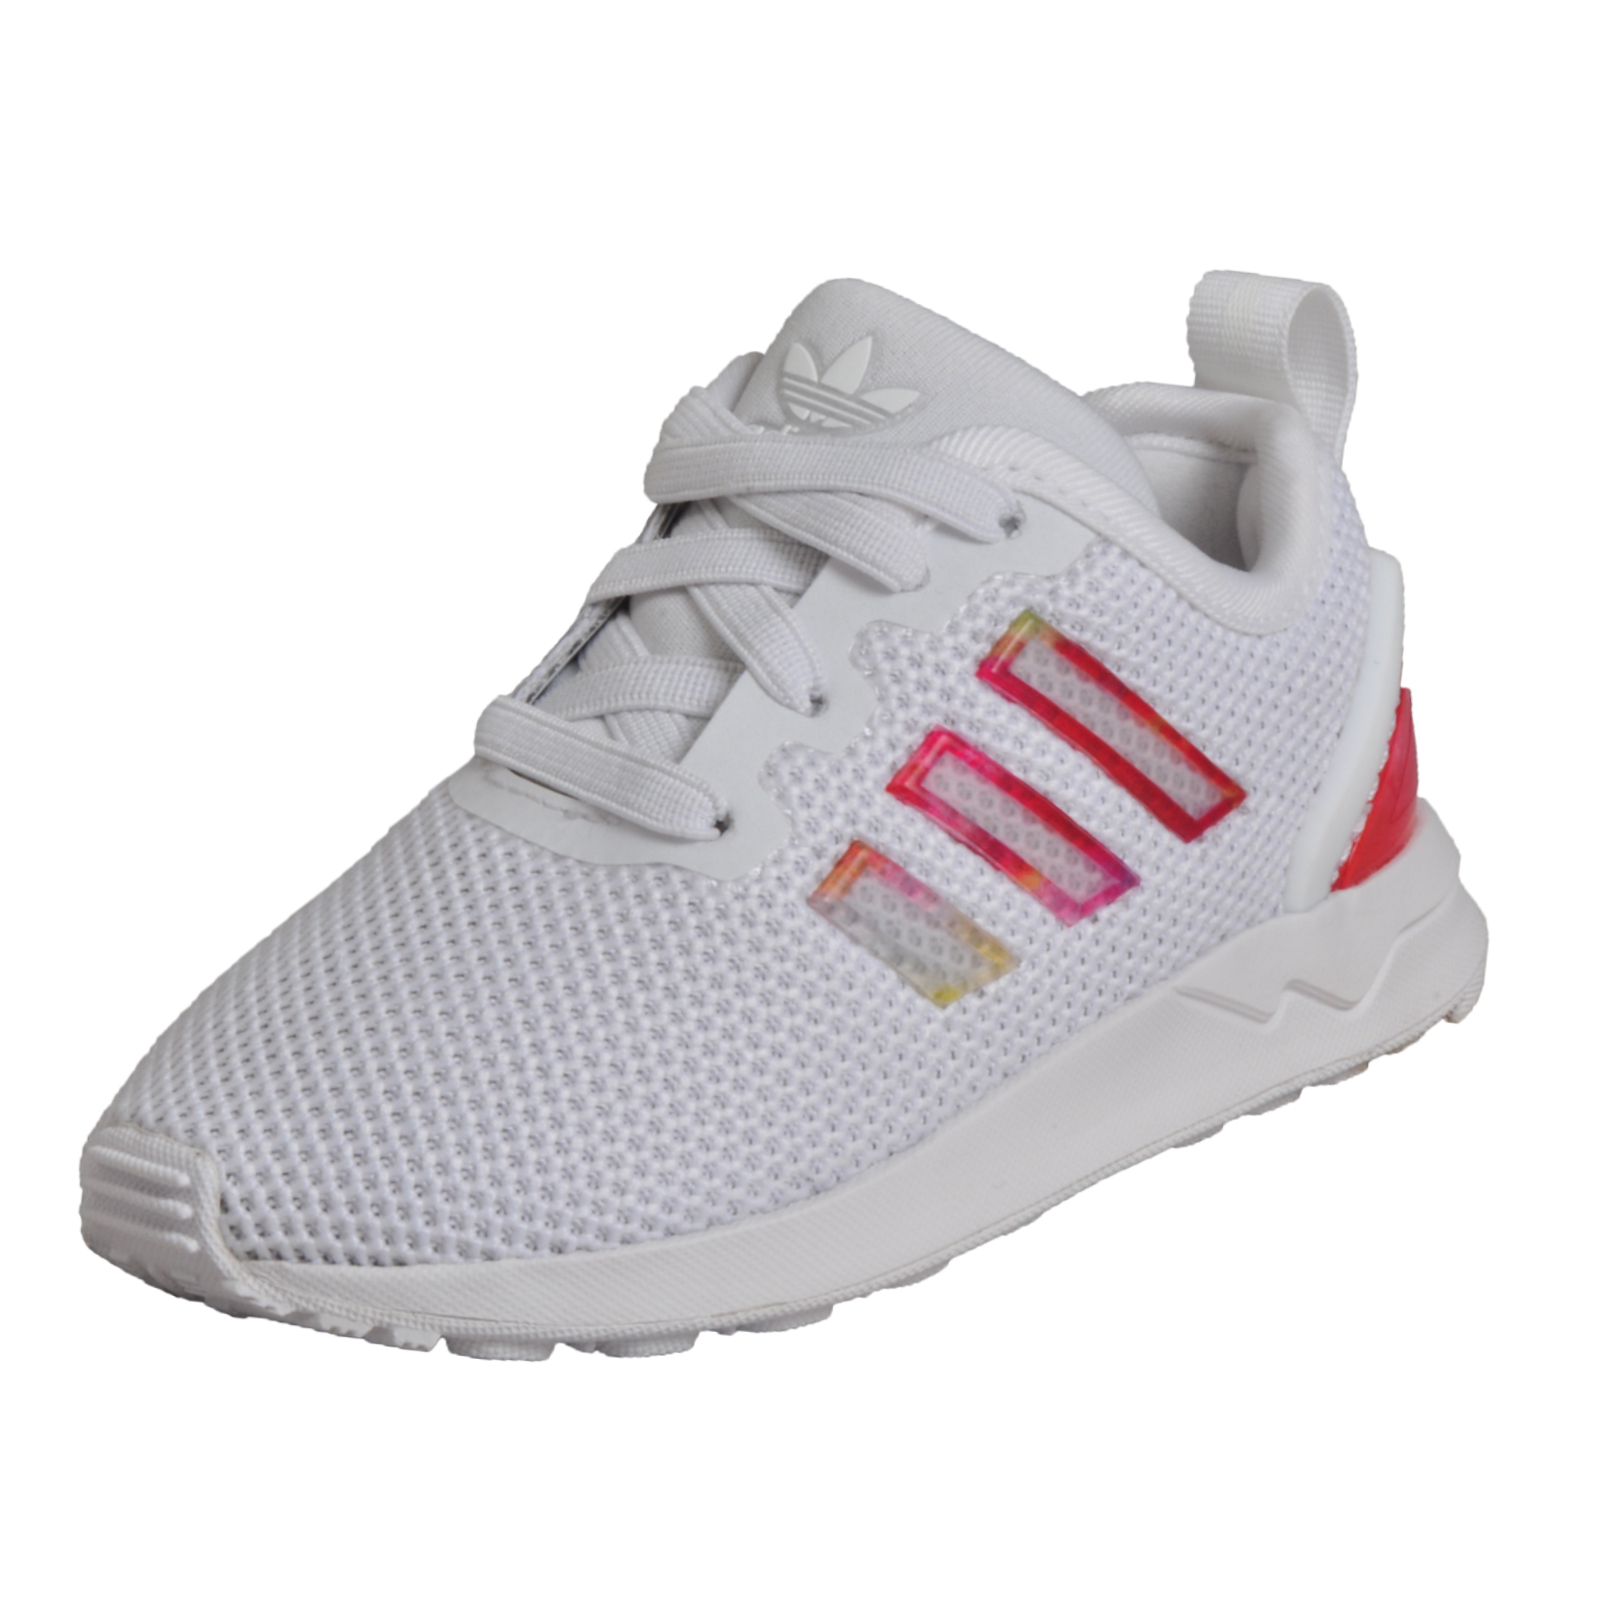 c1e2f2be9682b Details about Adidas Originals ZX Flux EL Infants Babies Toddlers Girls  Classic Casual Trainer